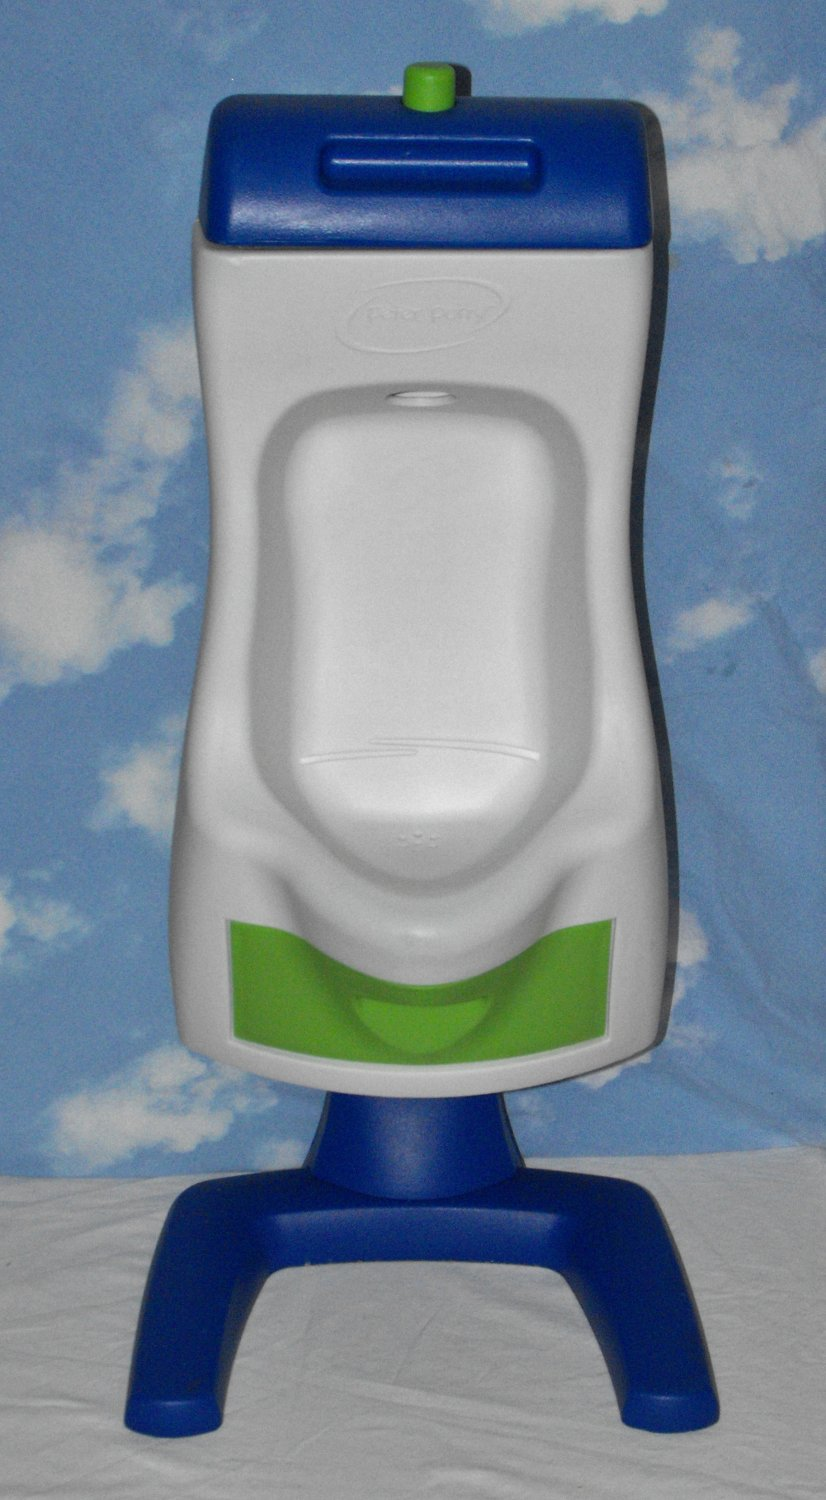 SOLD*awaiting feedback*Peter Potty Training Urinal For Boys